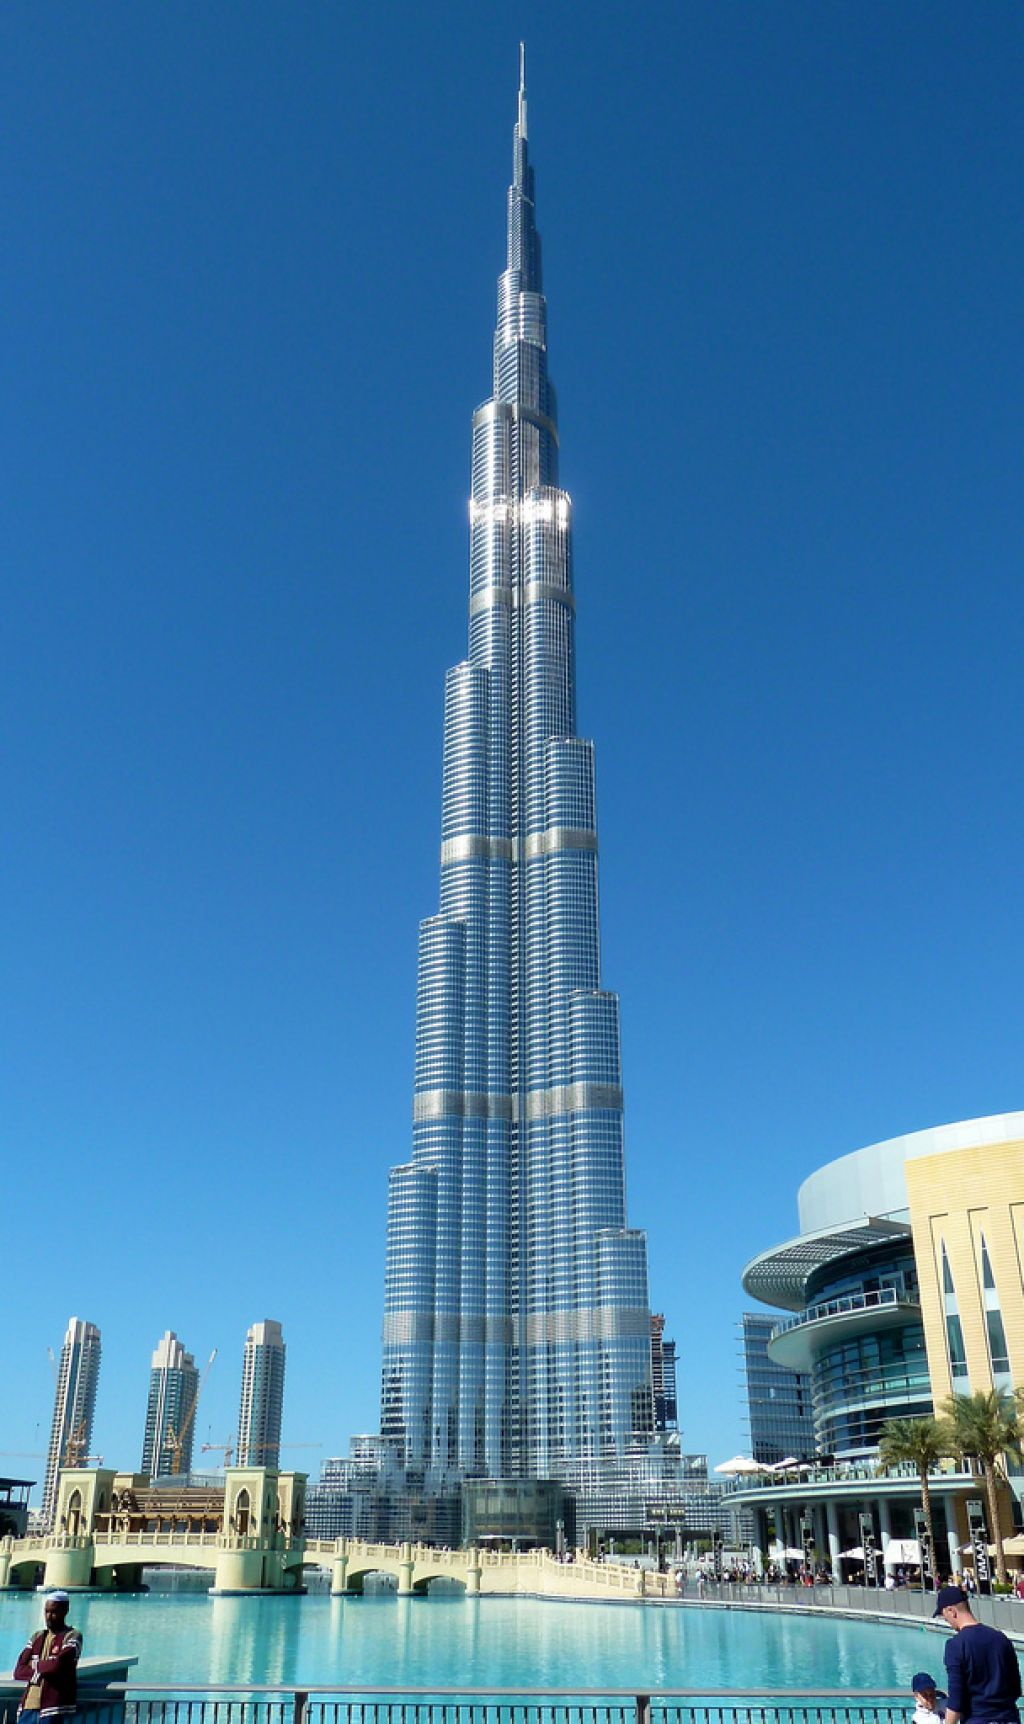 burj khalifa1 Burj Khalifa   The Tallest Building in the World